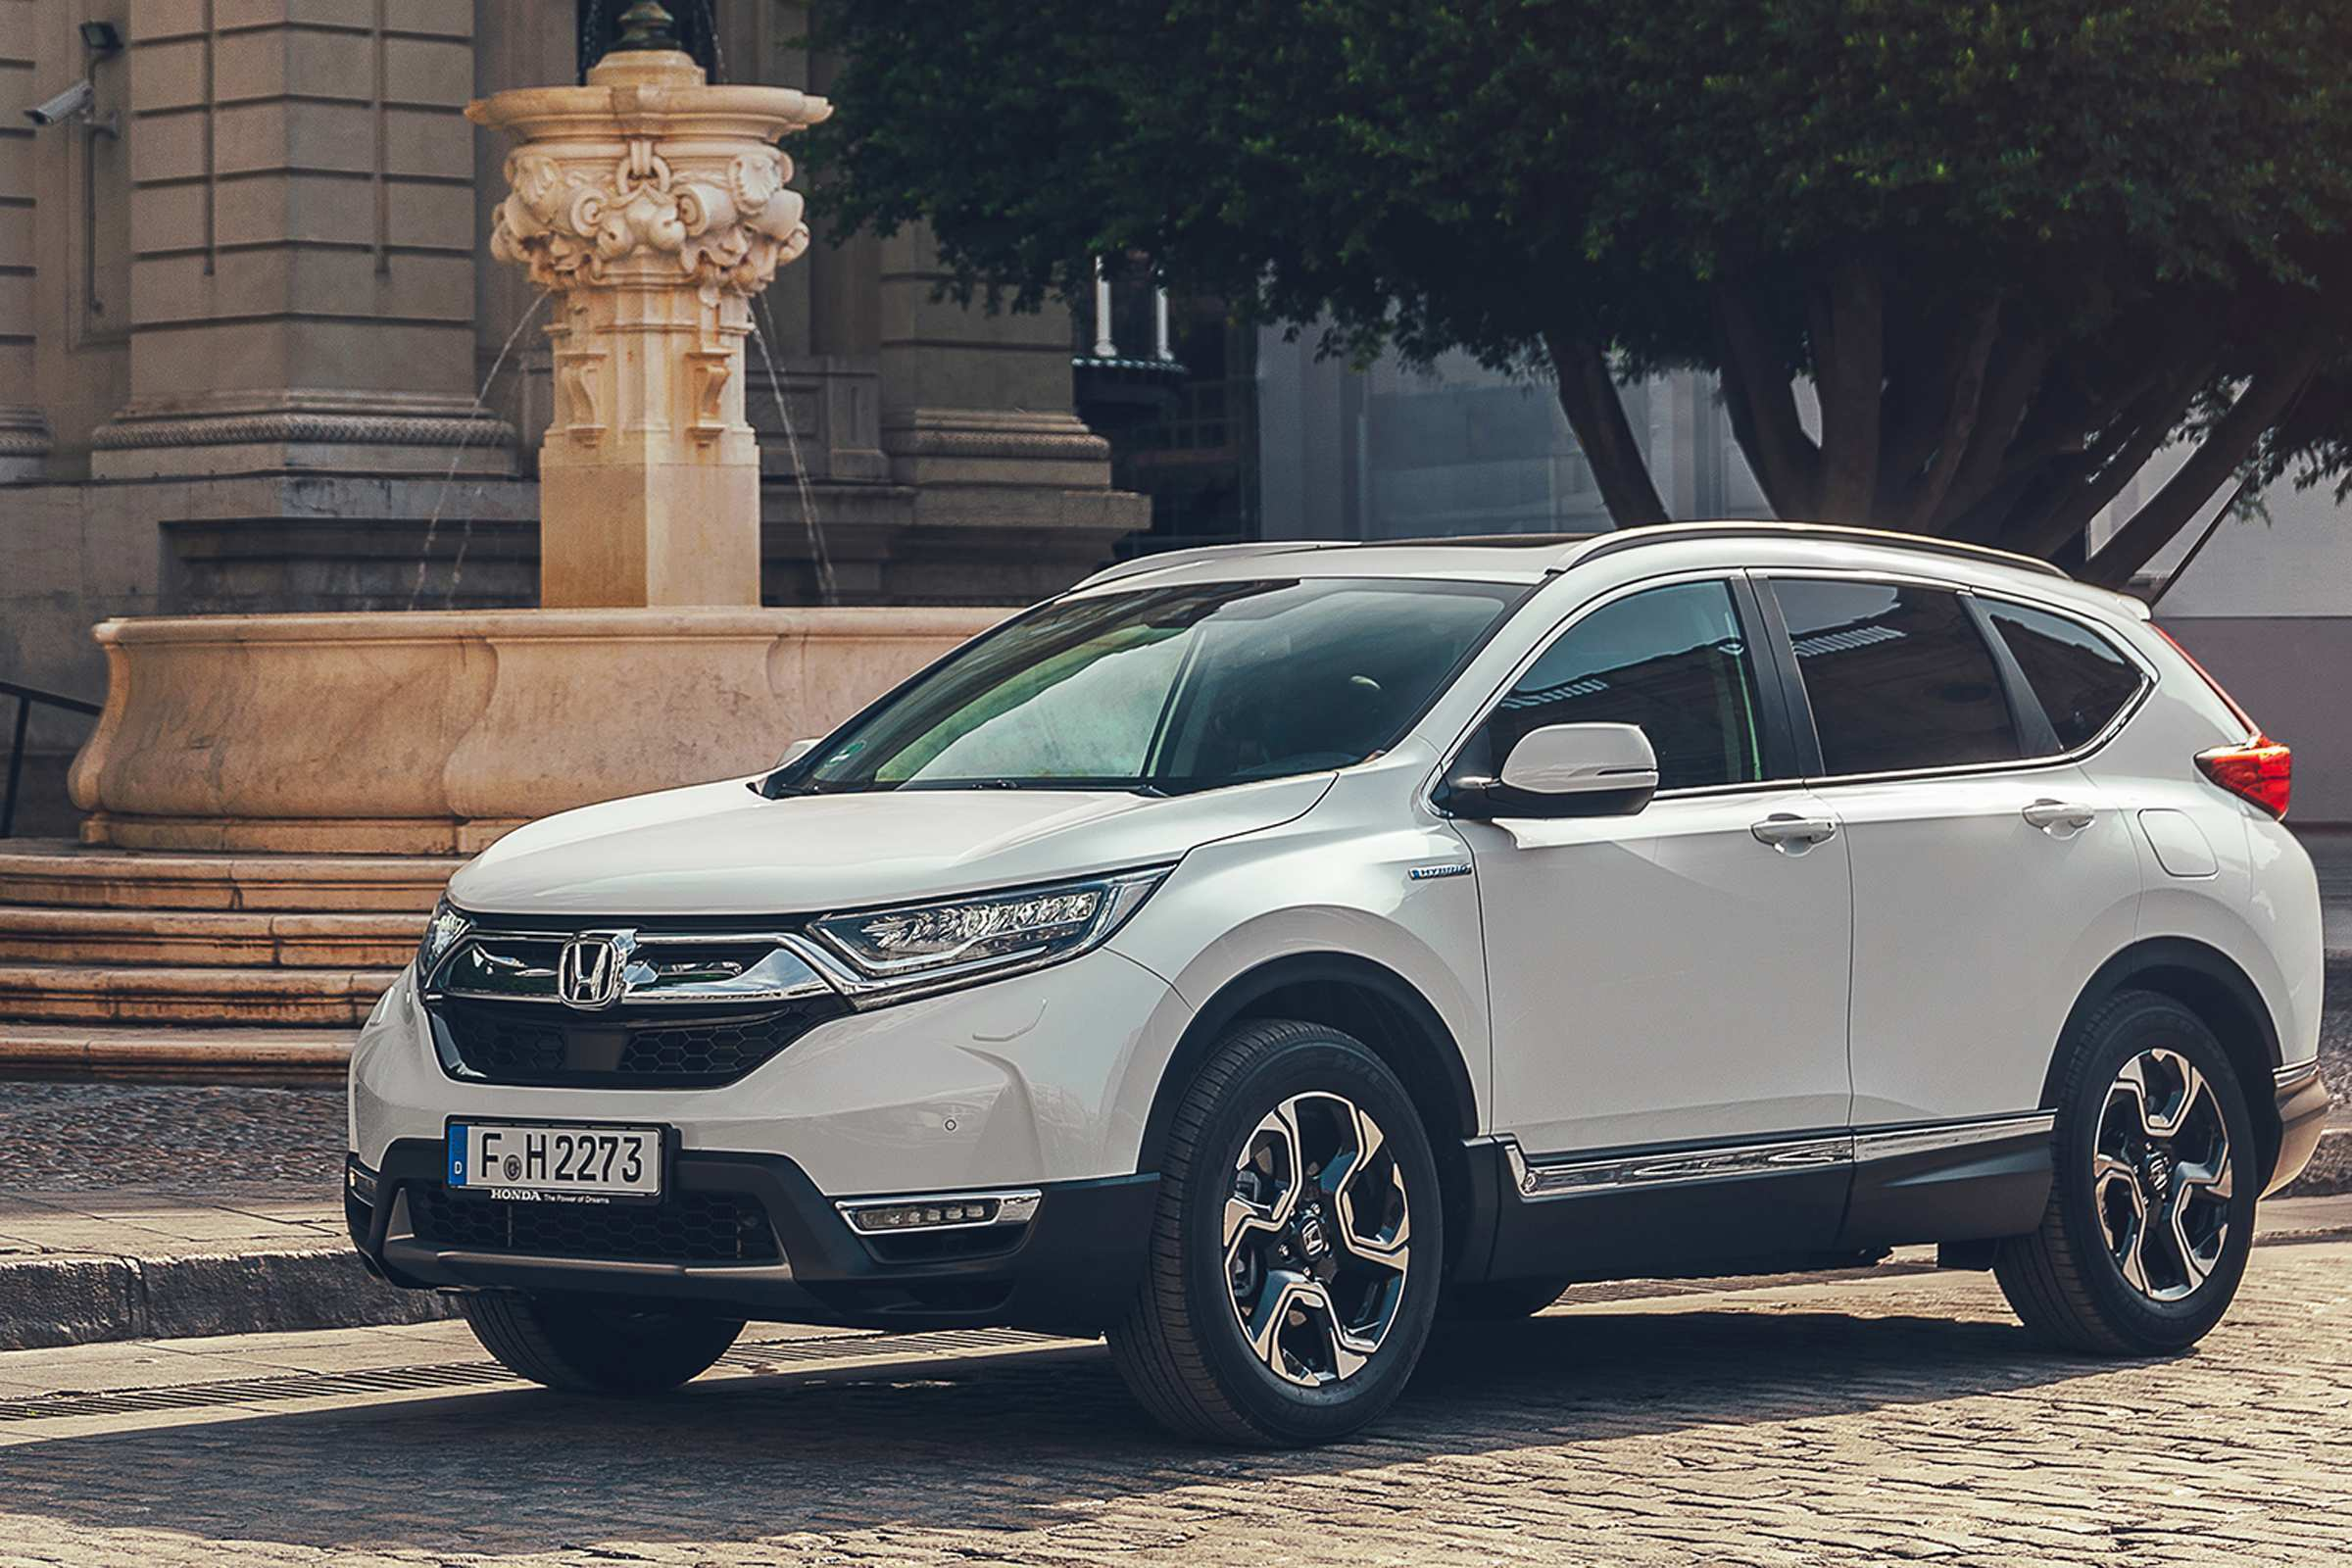 76 All New The Crv Honda 2019 Release Concept with The Crv Honda 2019 Release